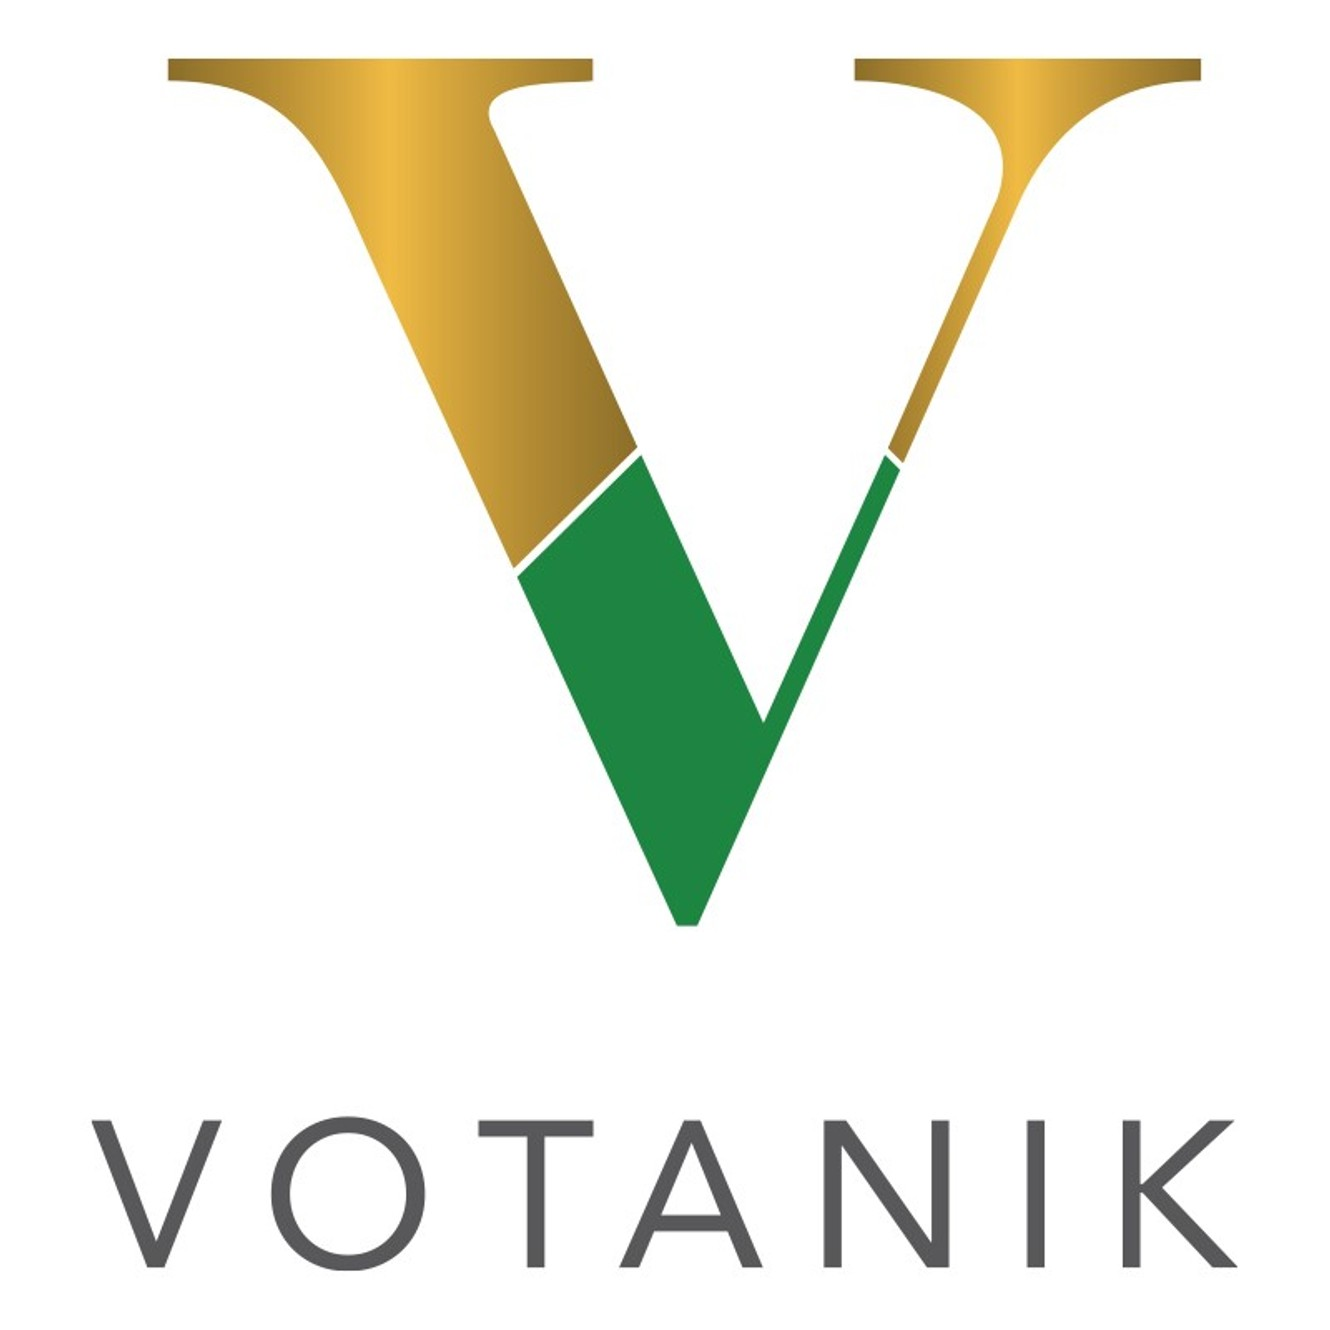 Votanik Medical logo, Get Us PPE partner